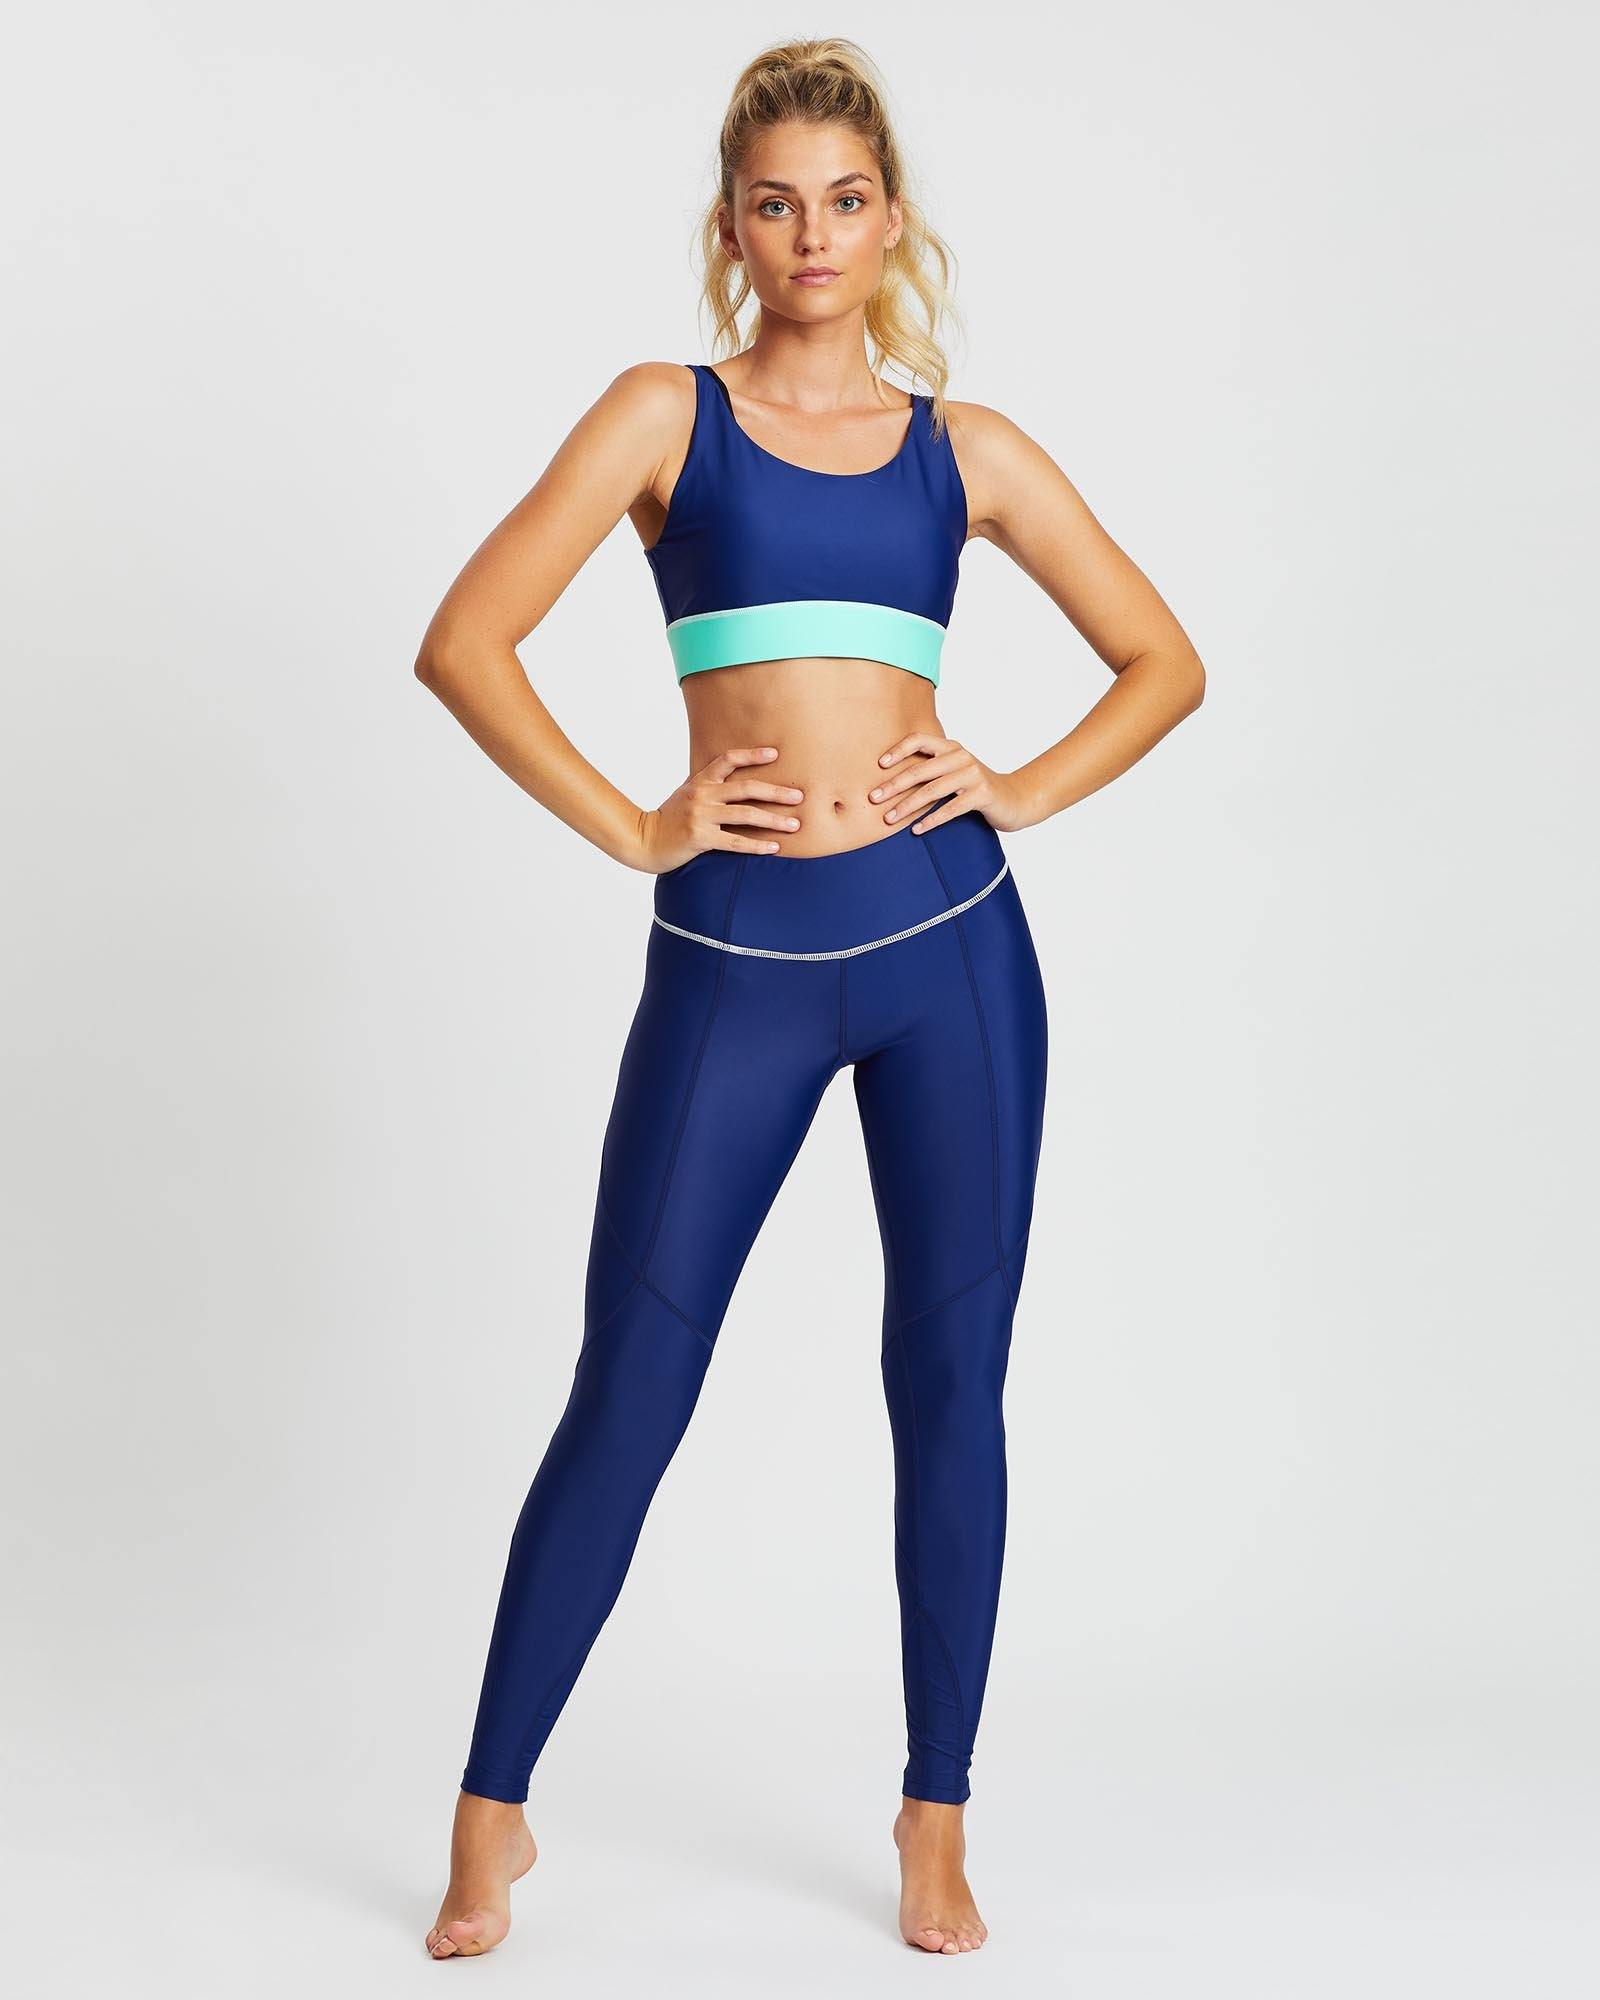 She of the Sea mid waist long Night Blue legging with contrast white stitching between legs and waistband, worn with Pectoralis bra top, front view, for pilates, barre, yoga, gym and studio workouts